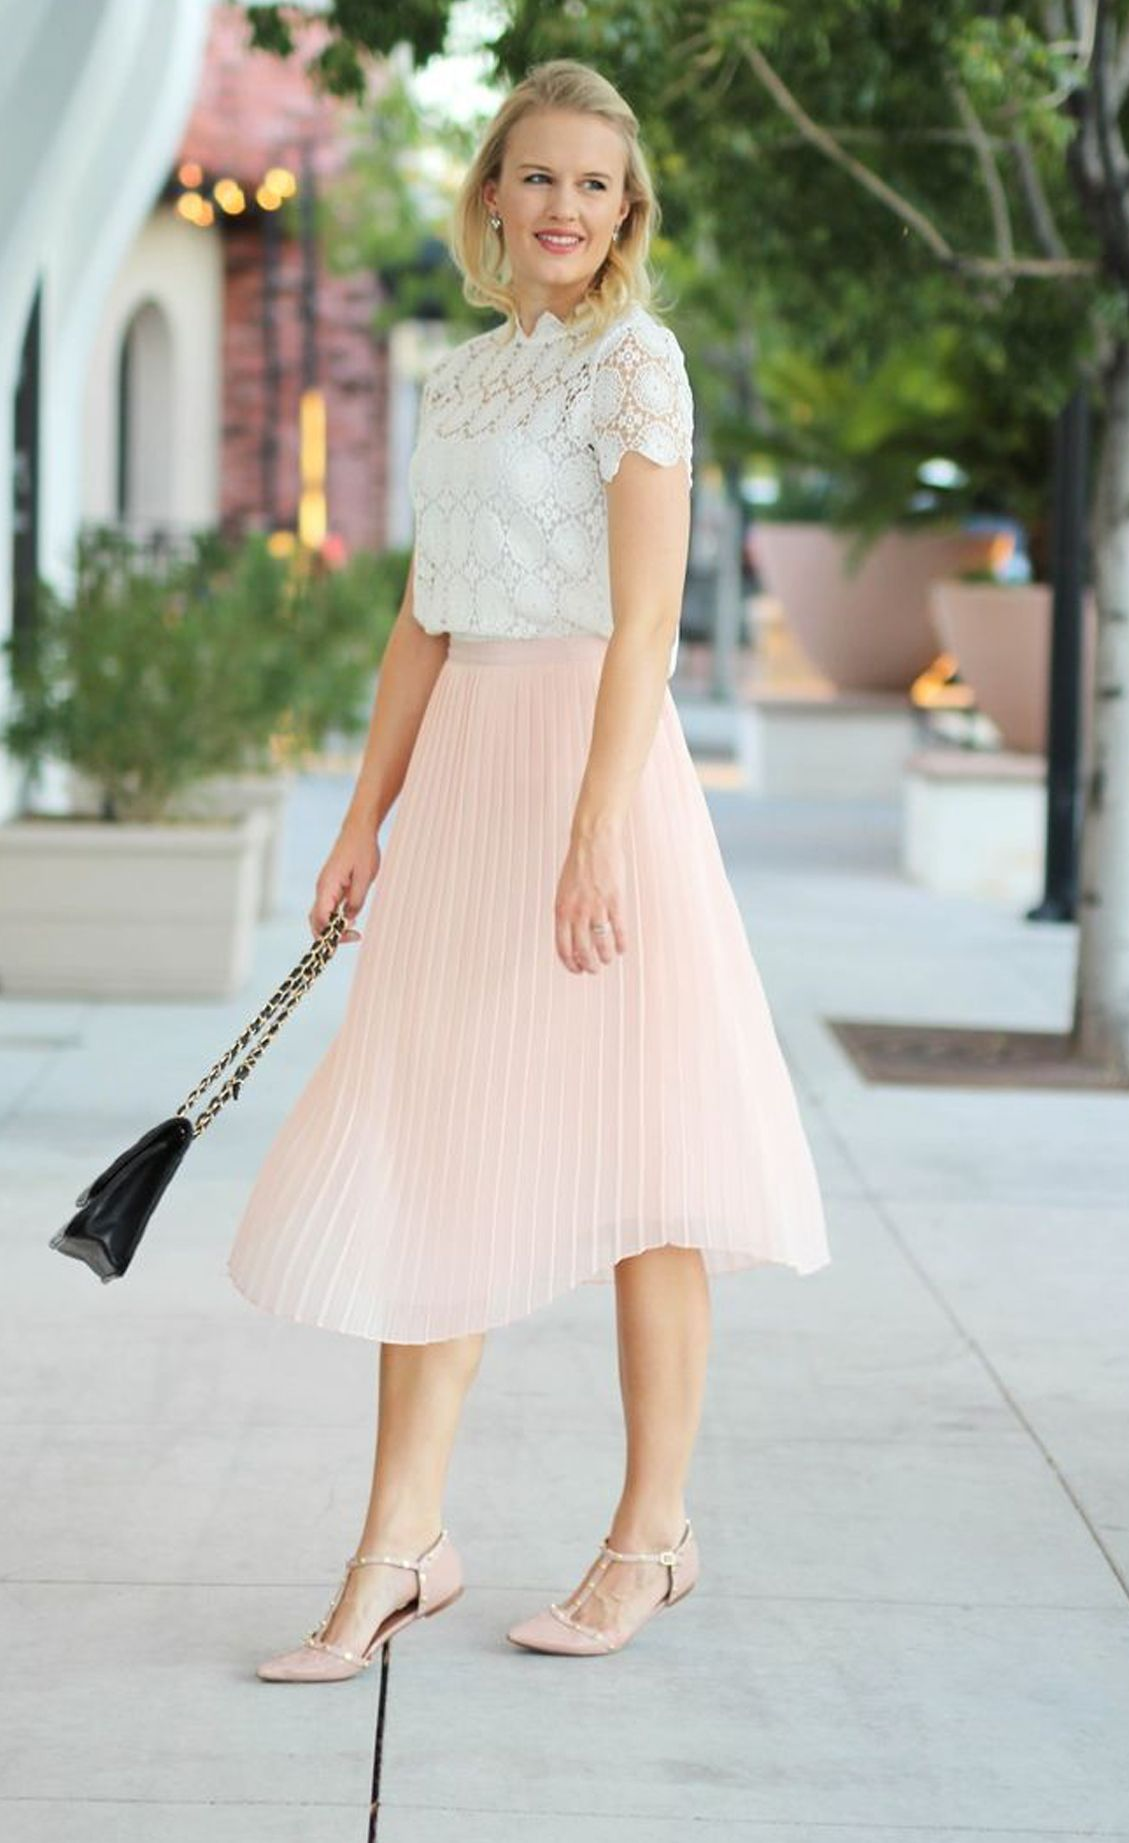 e7775bf594 blush pleated midi skirt, chic spring essentials every girl needs ...